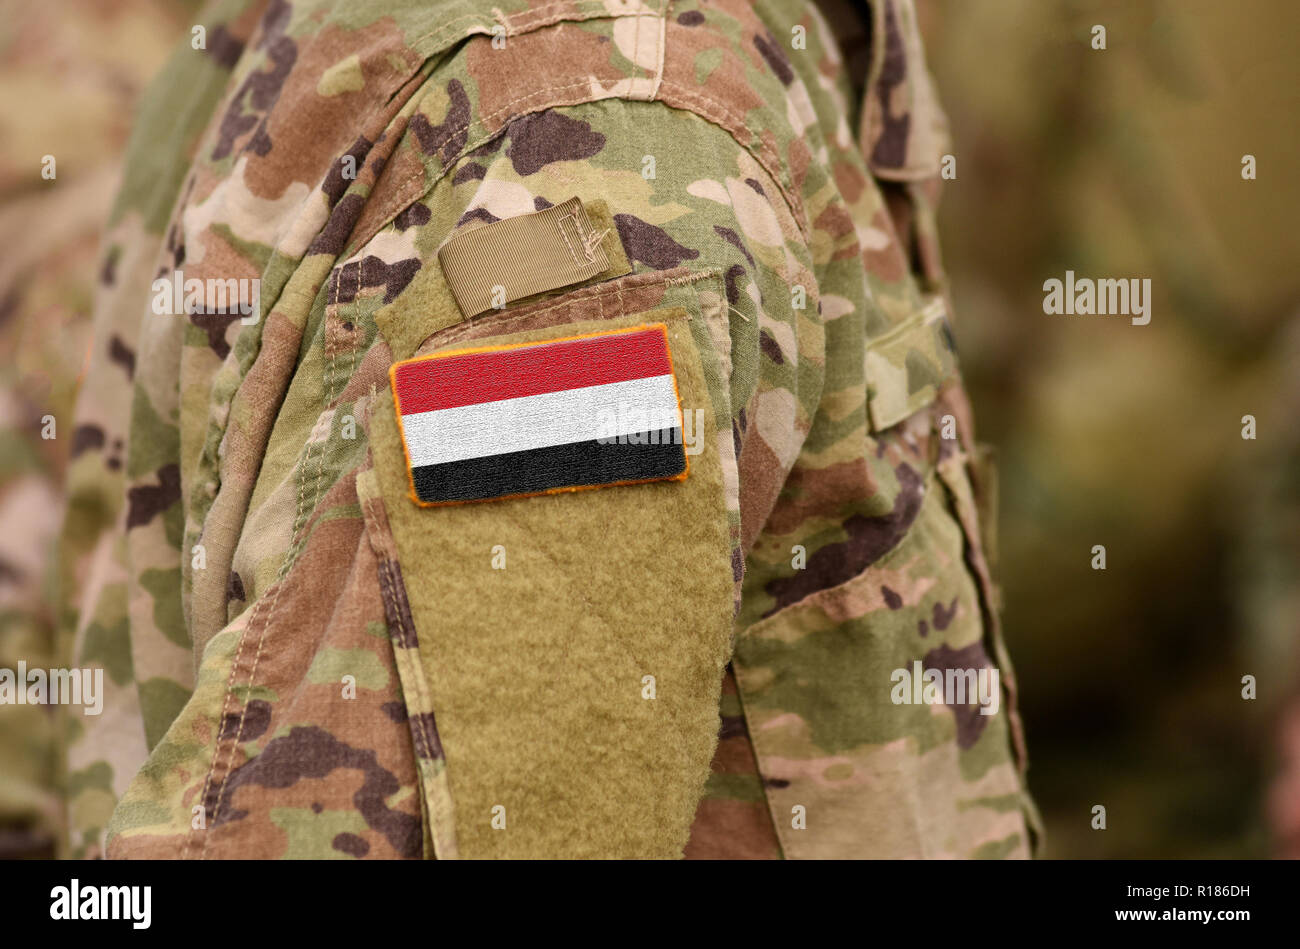 Yemen flag on soldiers arm. Republic of Yemen troops (collage) Stock Photo